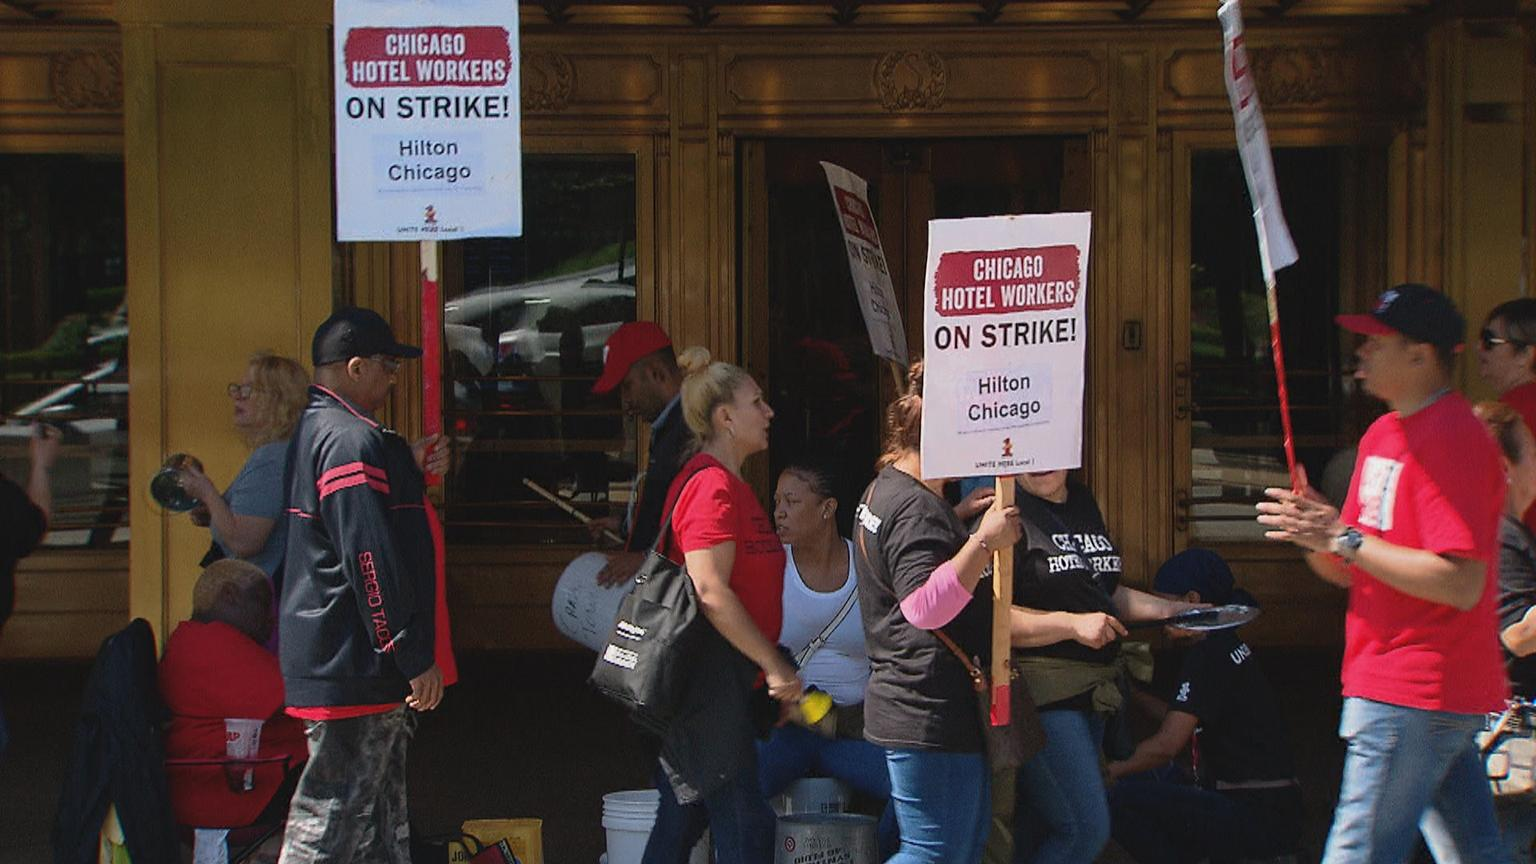 Workers picket in front of the Hilton Chicago on Tuesday, Sept. 11, 2018. (Chicago Tonight)